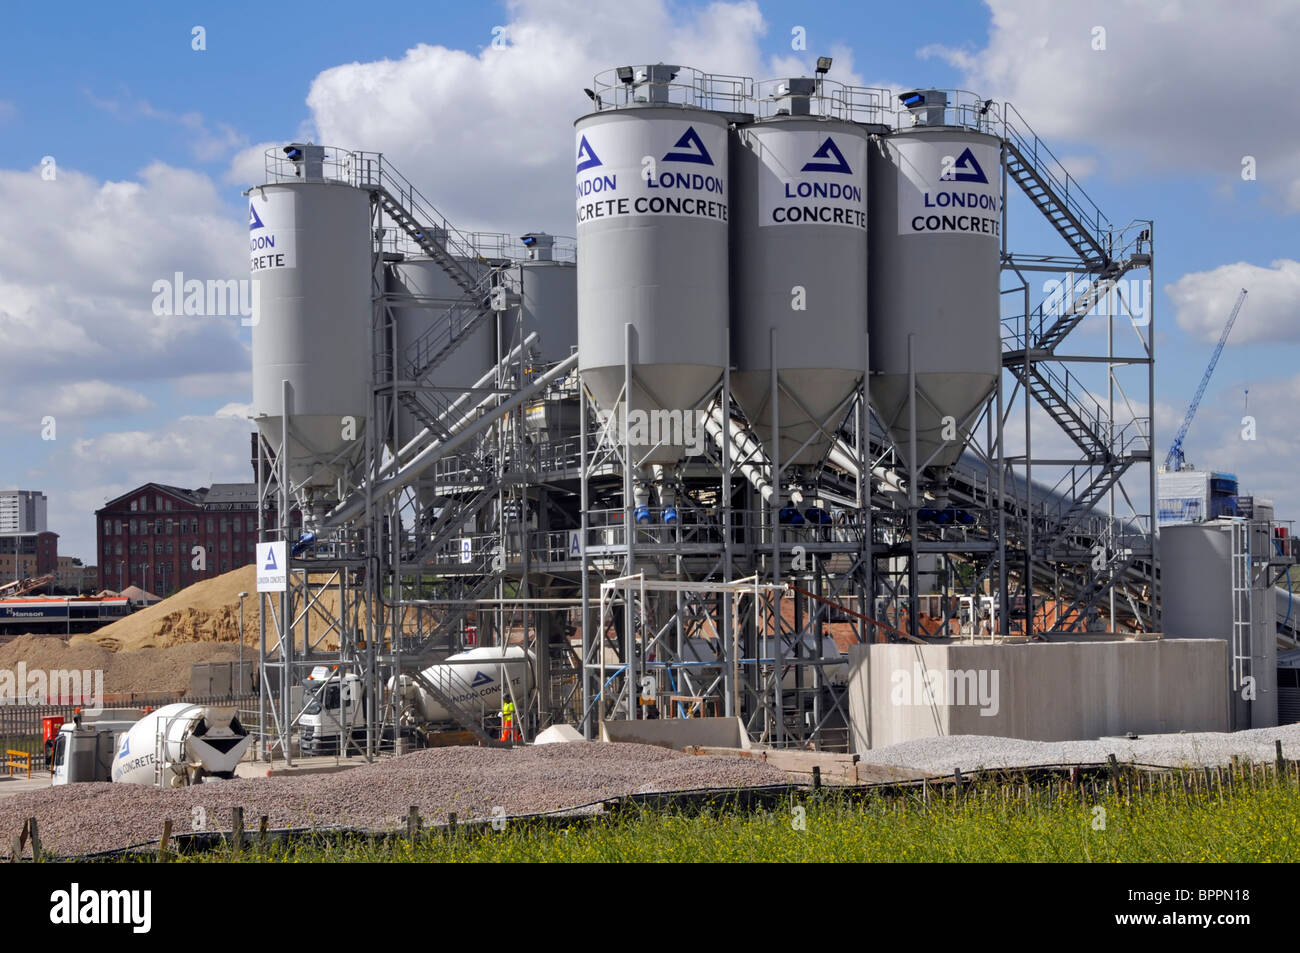 Cement Ready Mix Plant : London concrete ready mixed plant stock photo